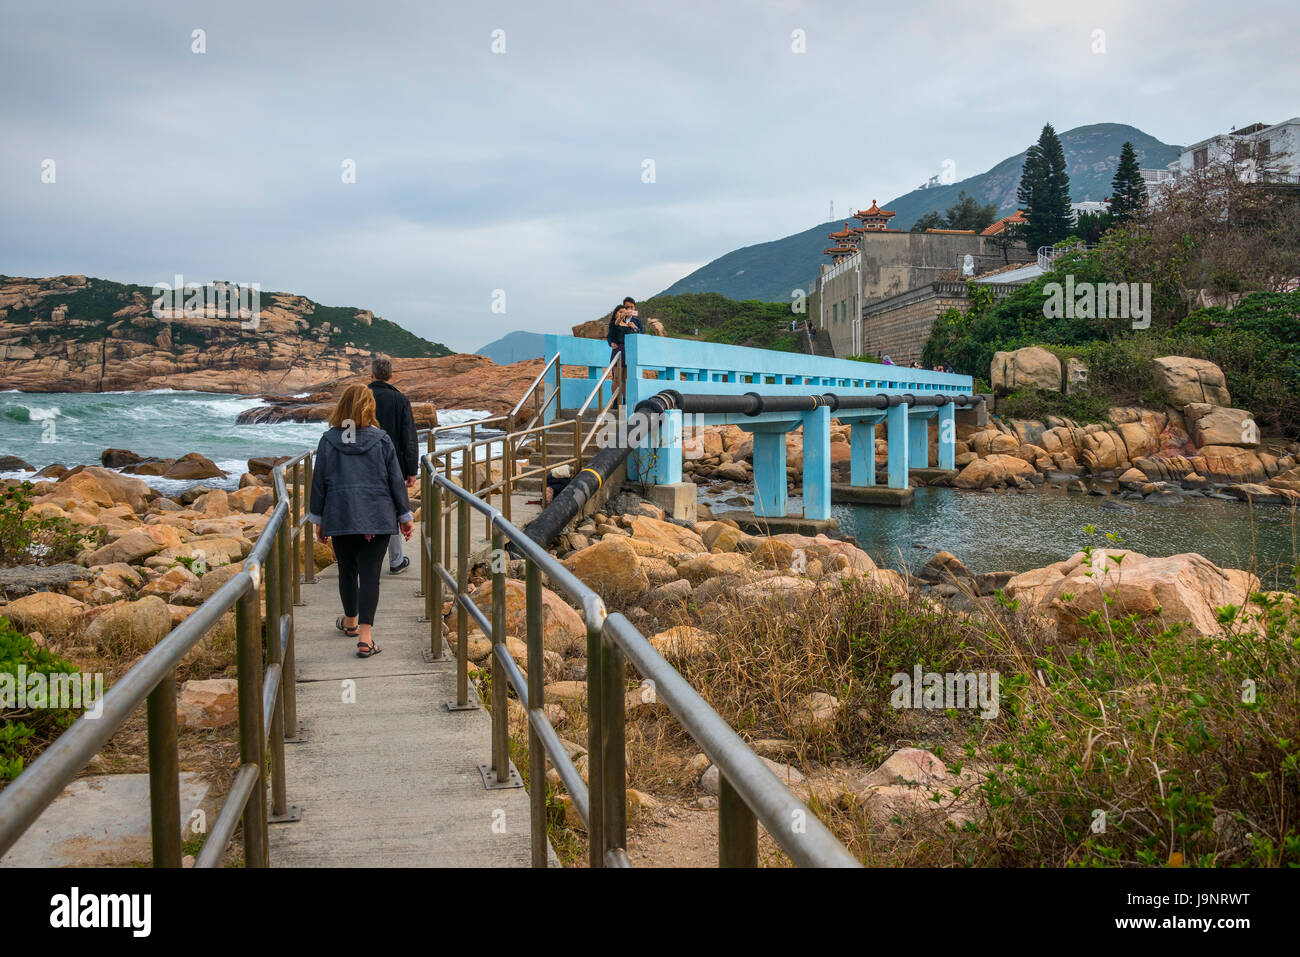 Shek-O, Blue Bridge and Coastline, Hong Kong - Stock Image